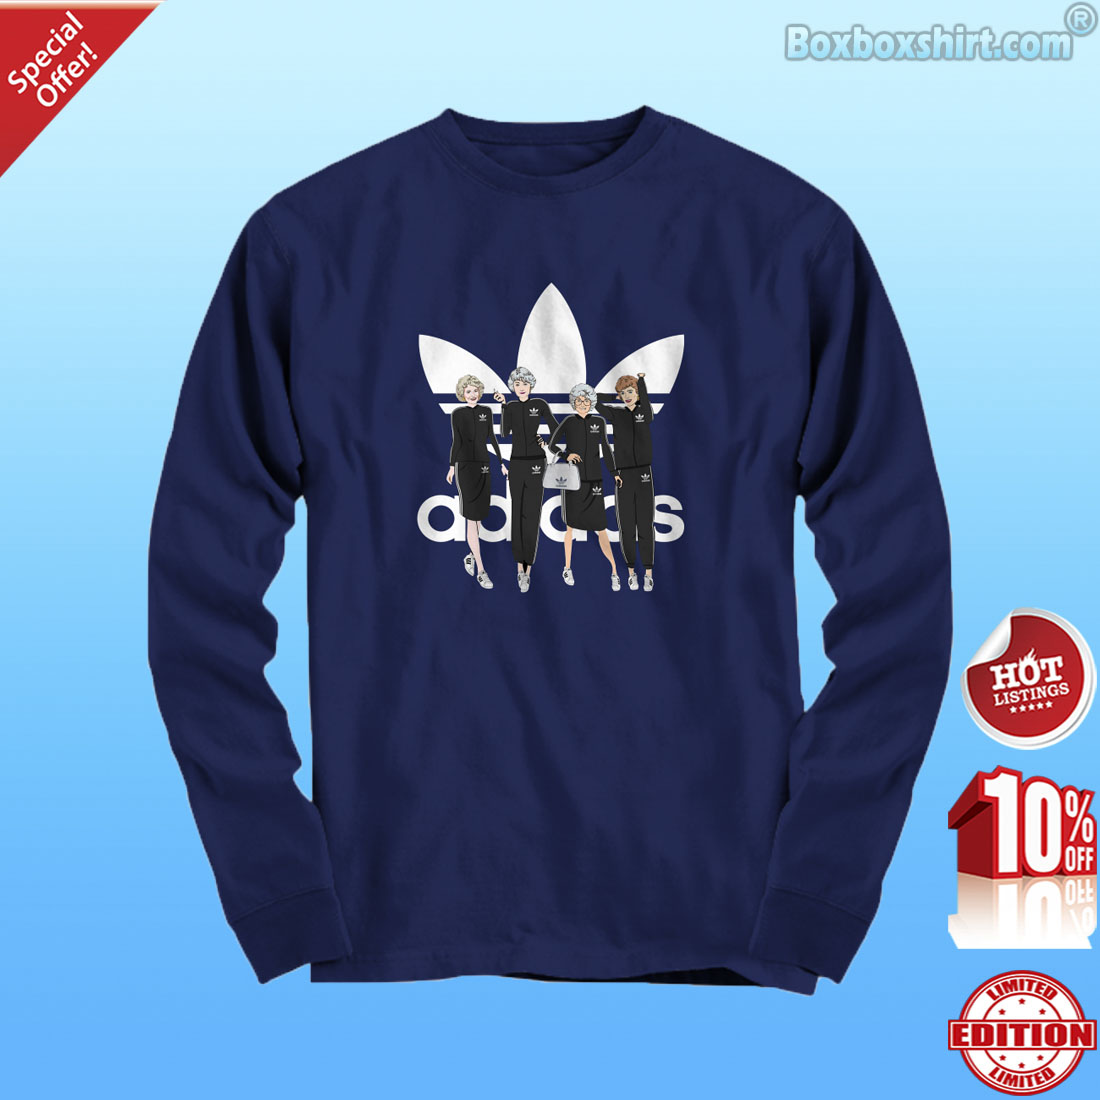 Golden Girls Adidas shirt